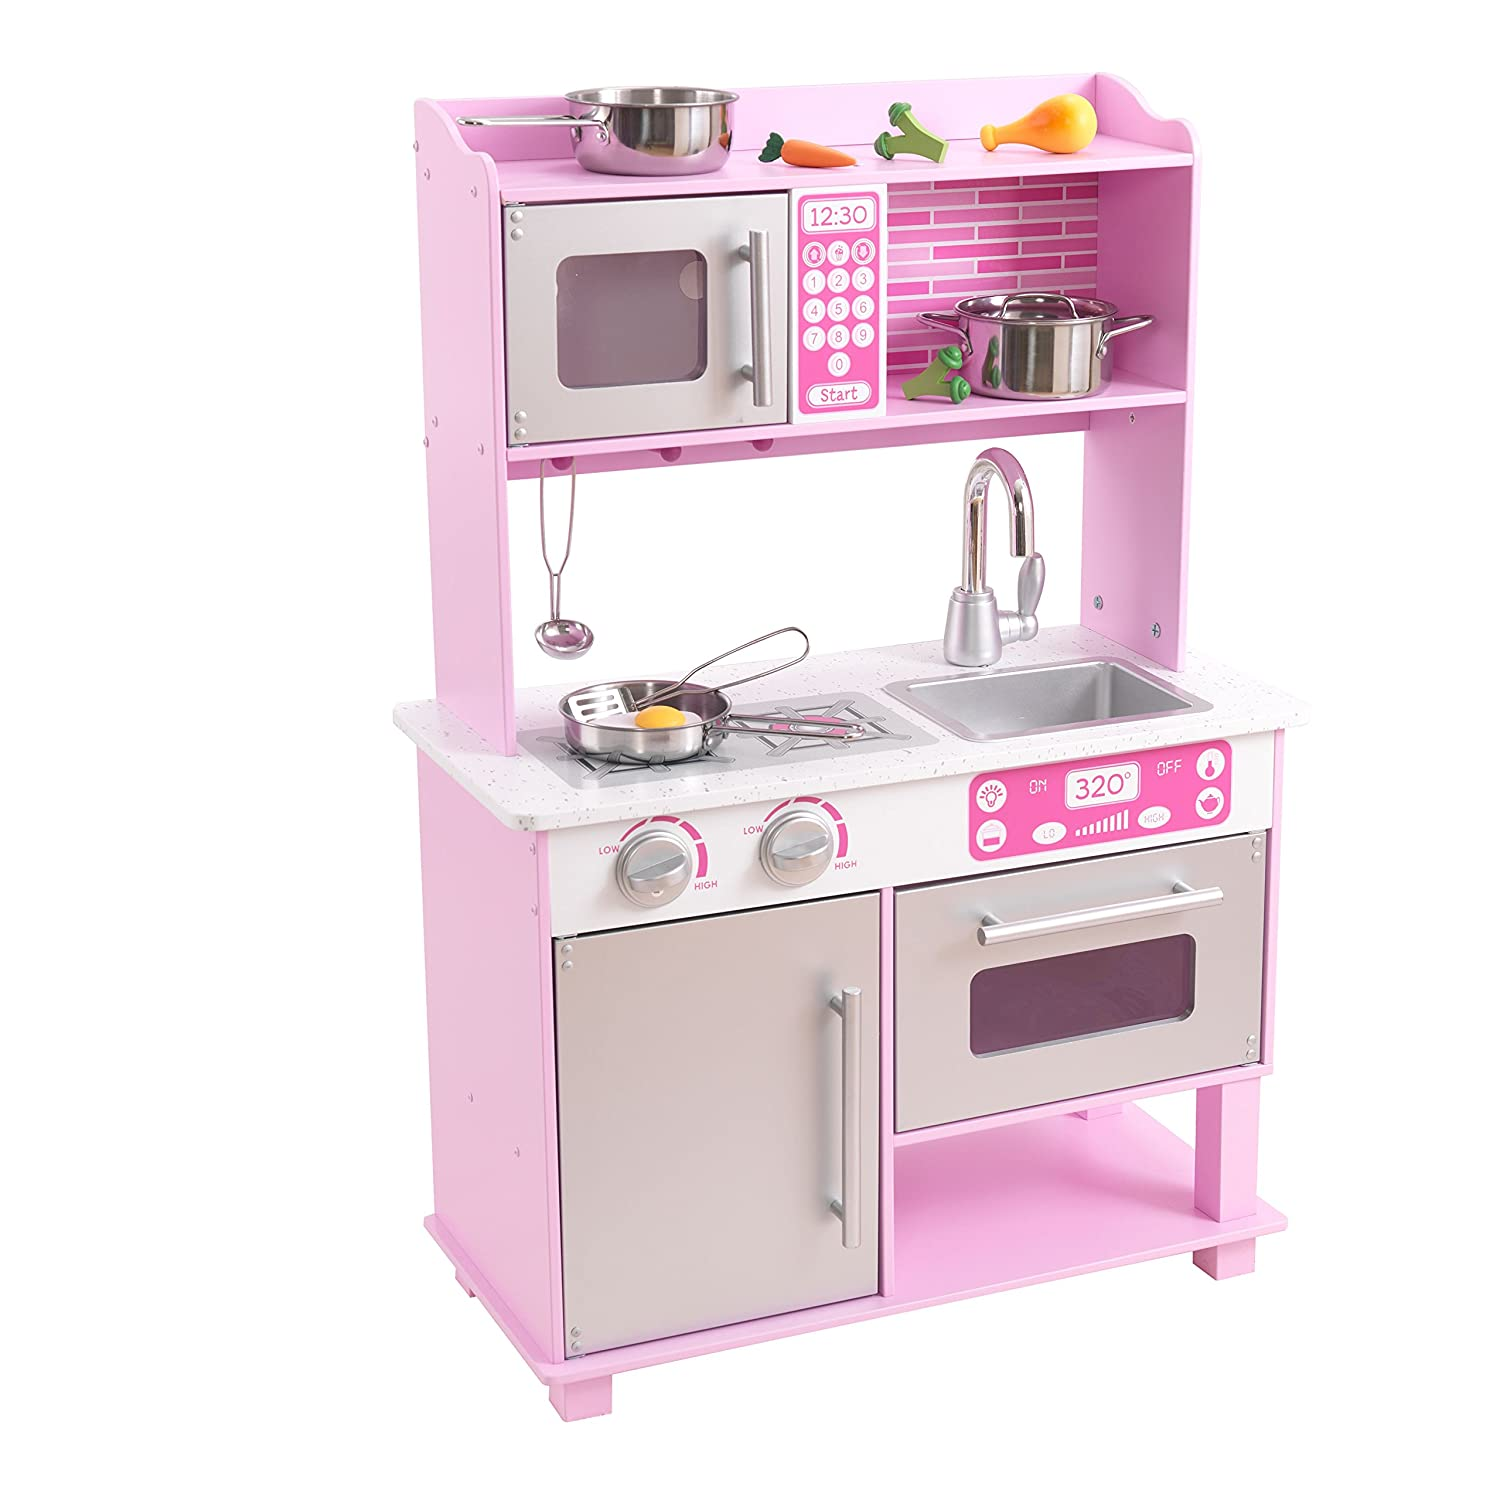 Kidkraft Girl\'s Pink Toddler Kitchen With Accessories: Amazon.co.uk ...